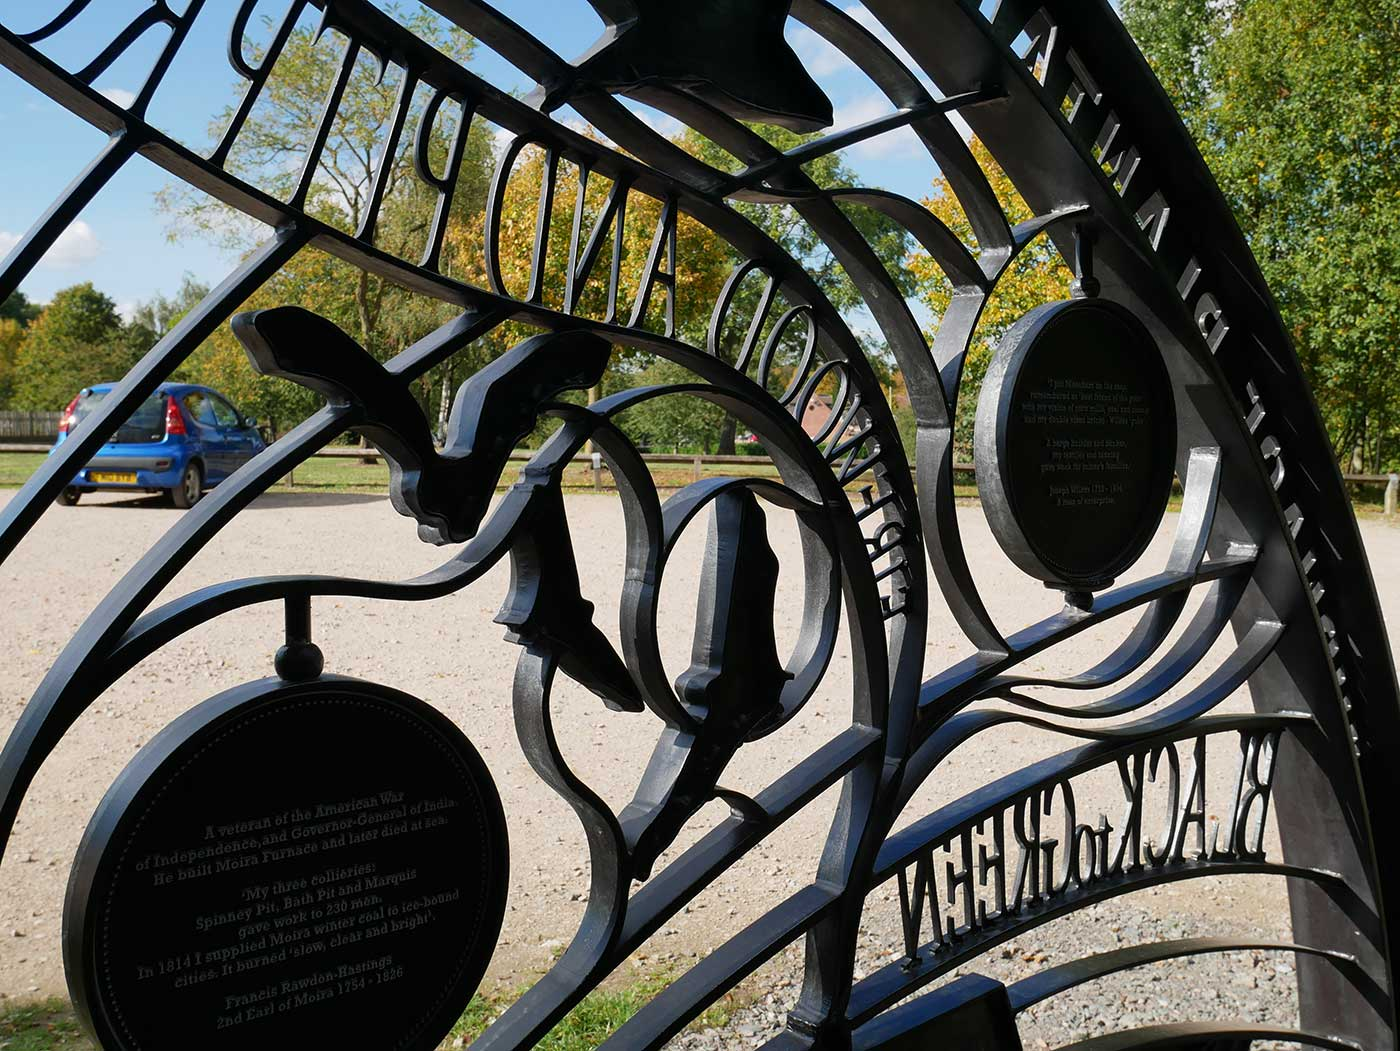 Ornate steel structure containing the interpretive stories.